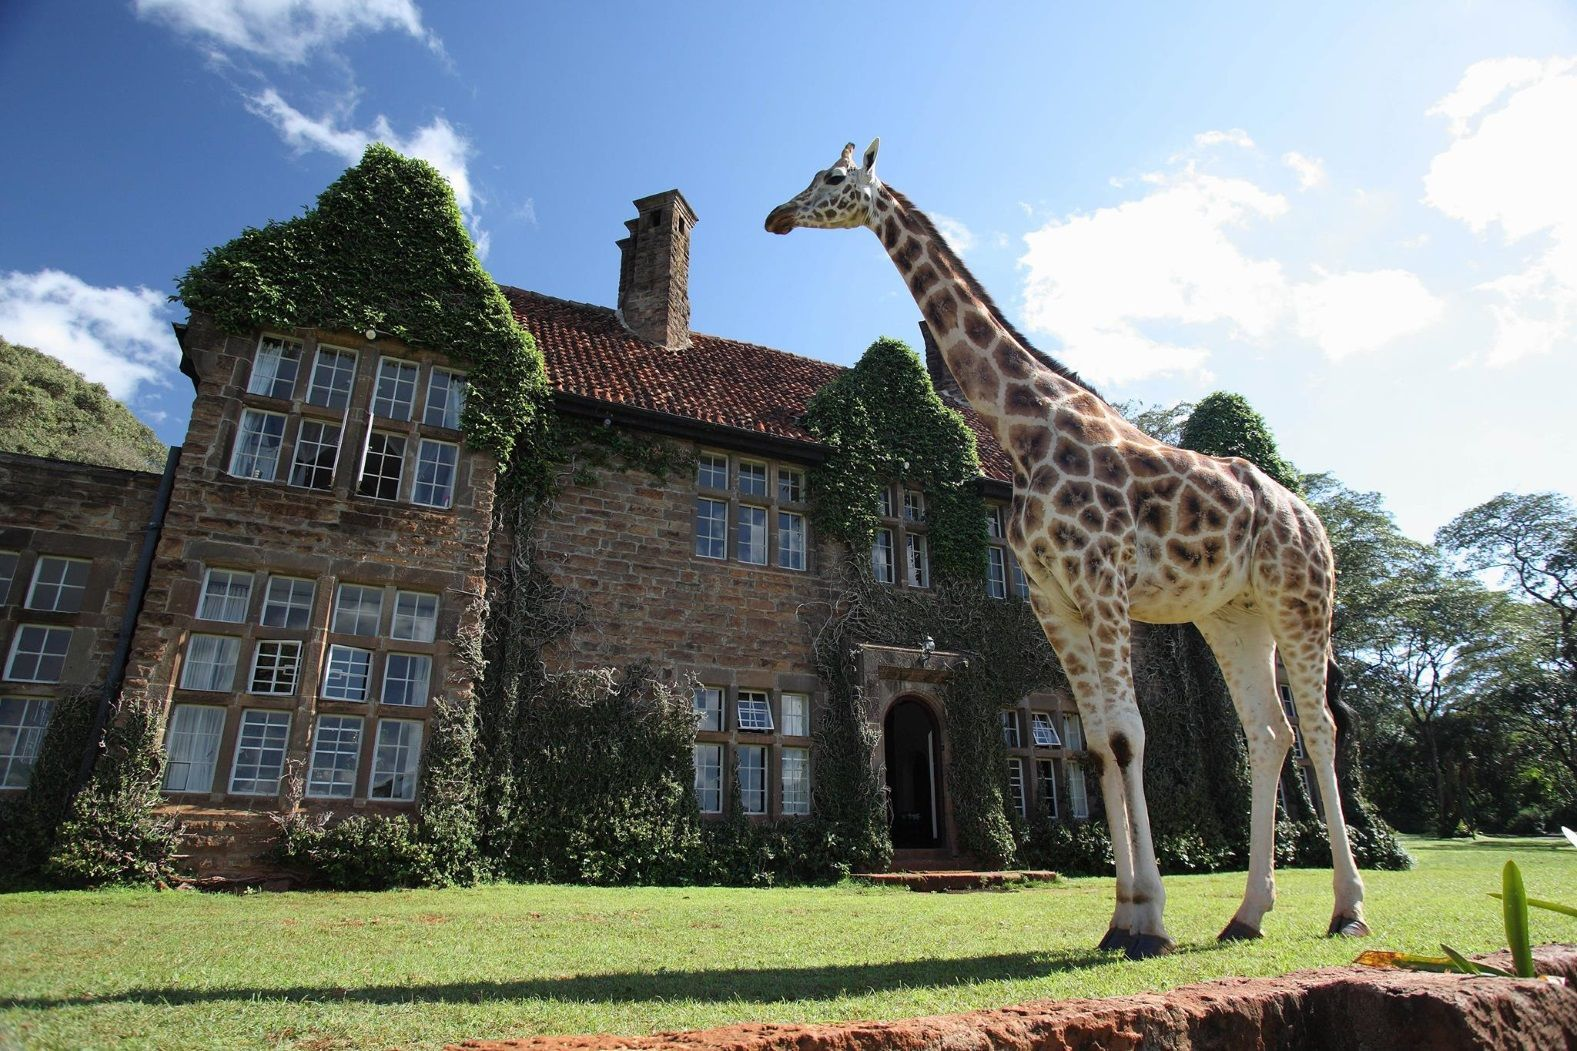 готель Giraffe Manor у Кенії